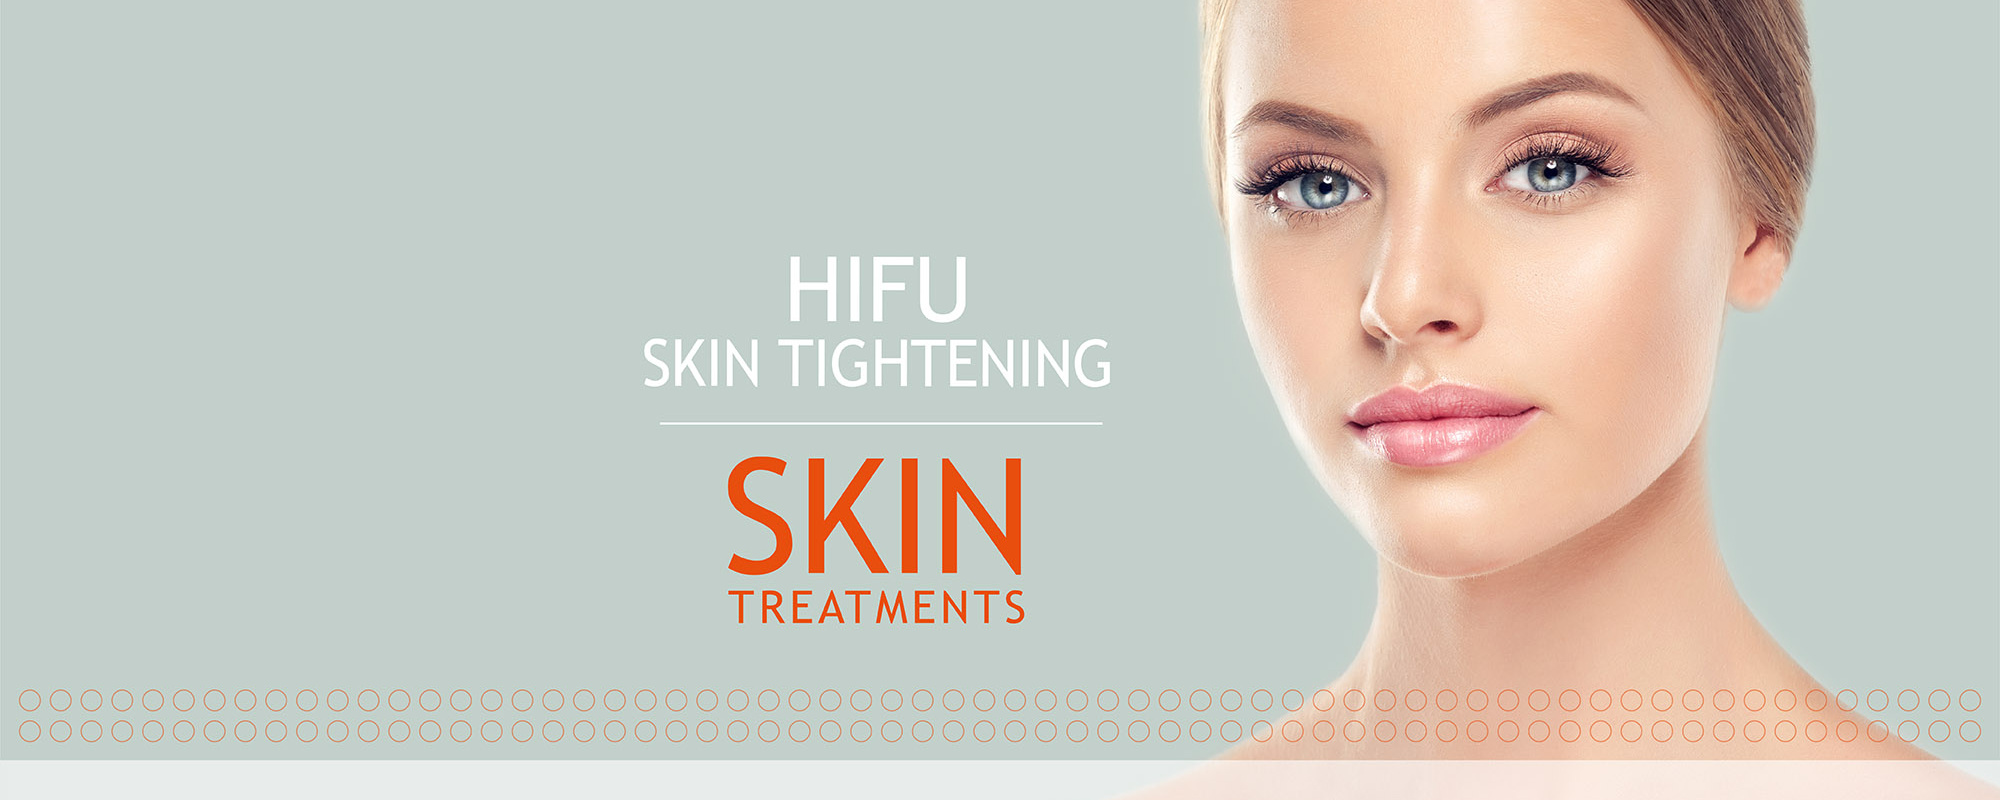 HIFU Skin Tightening Treatment Banner